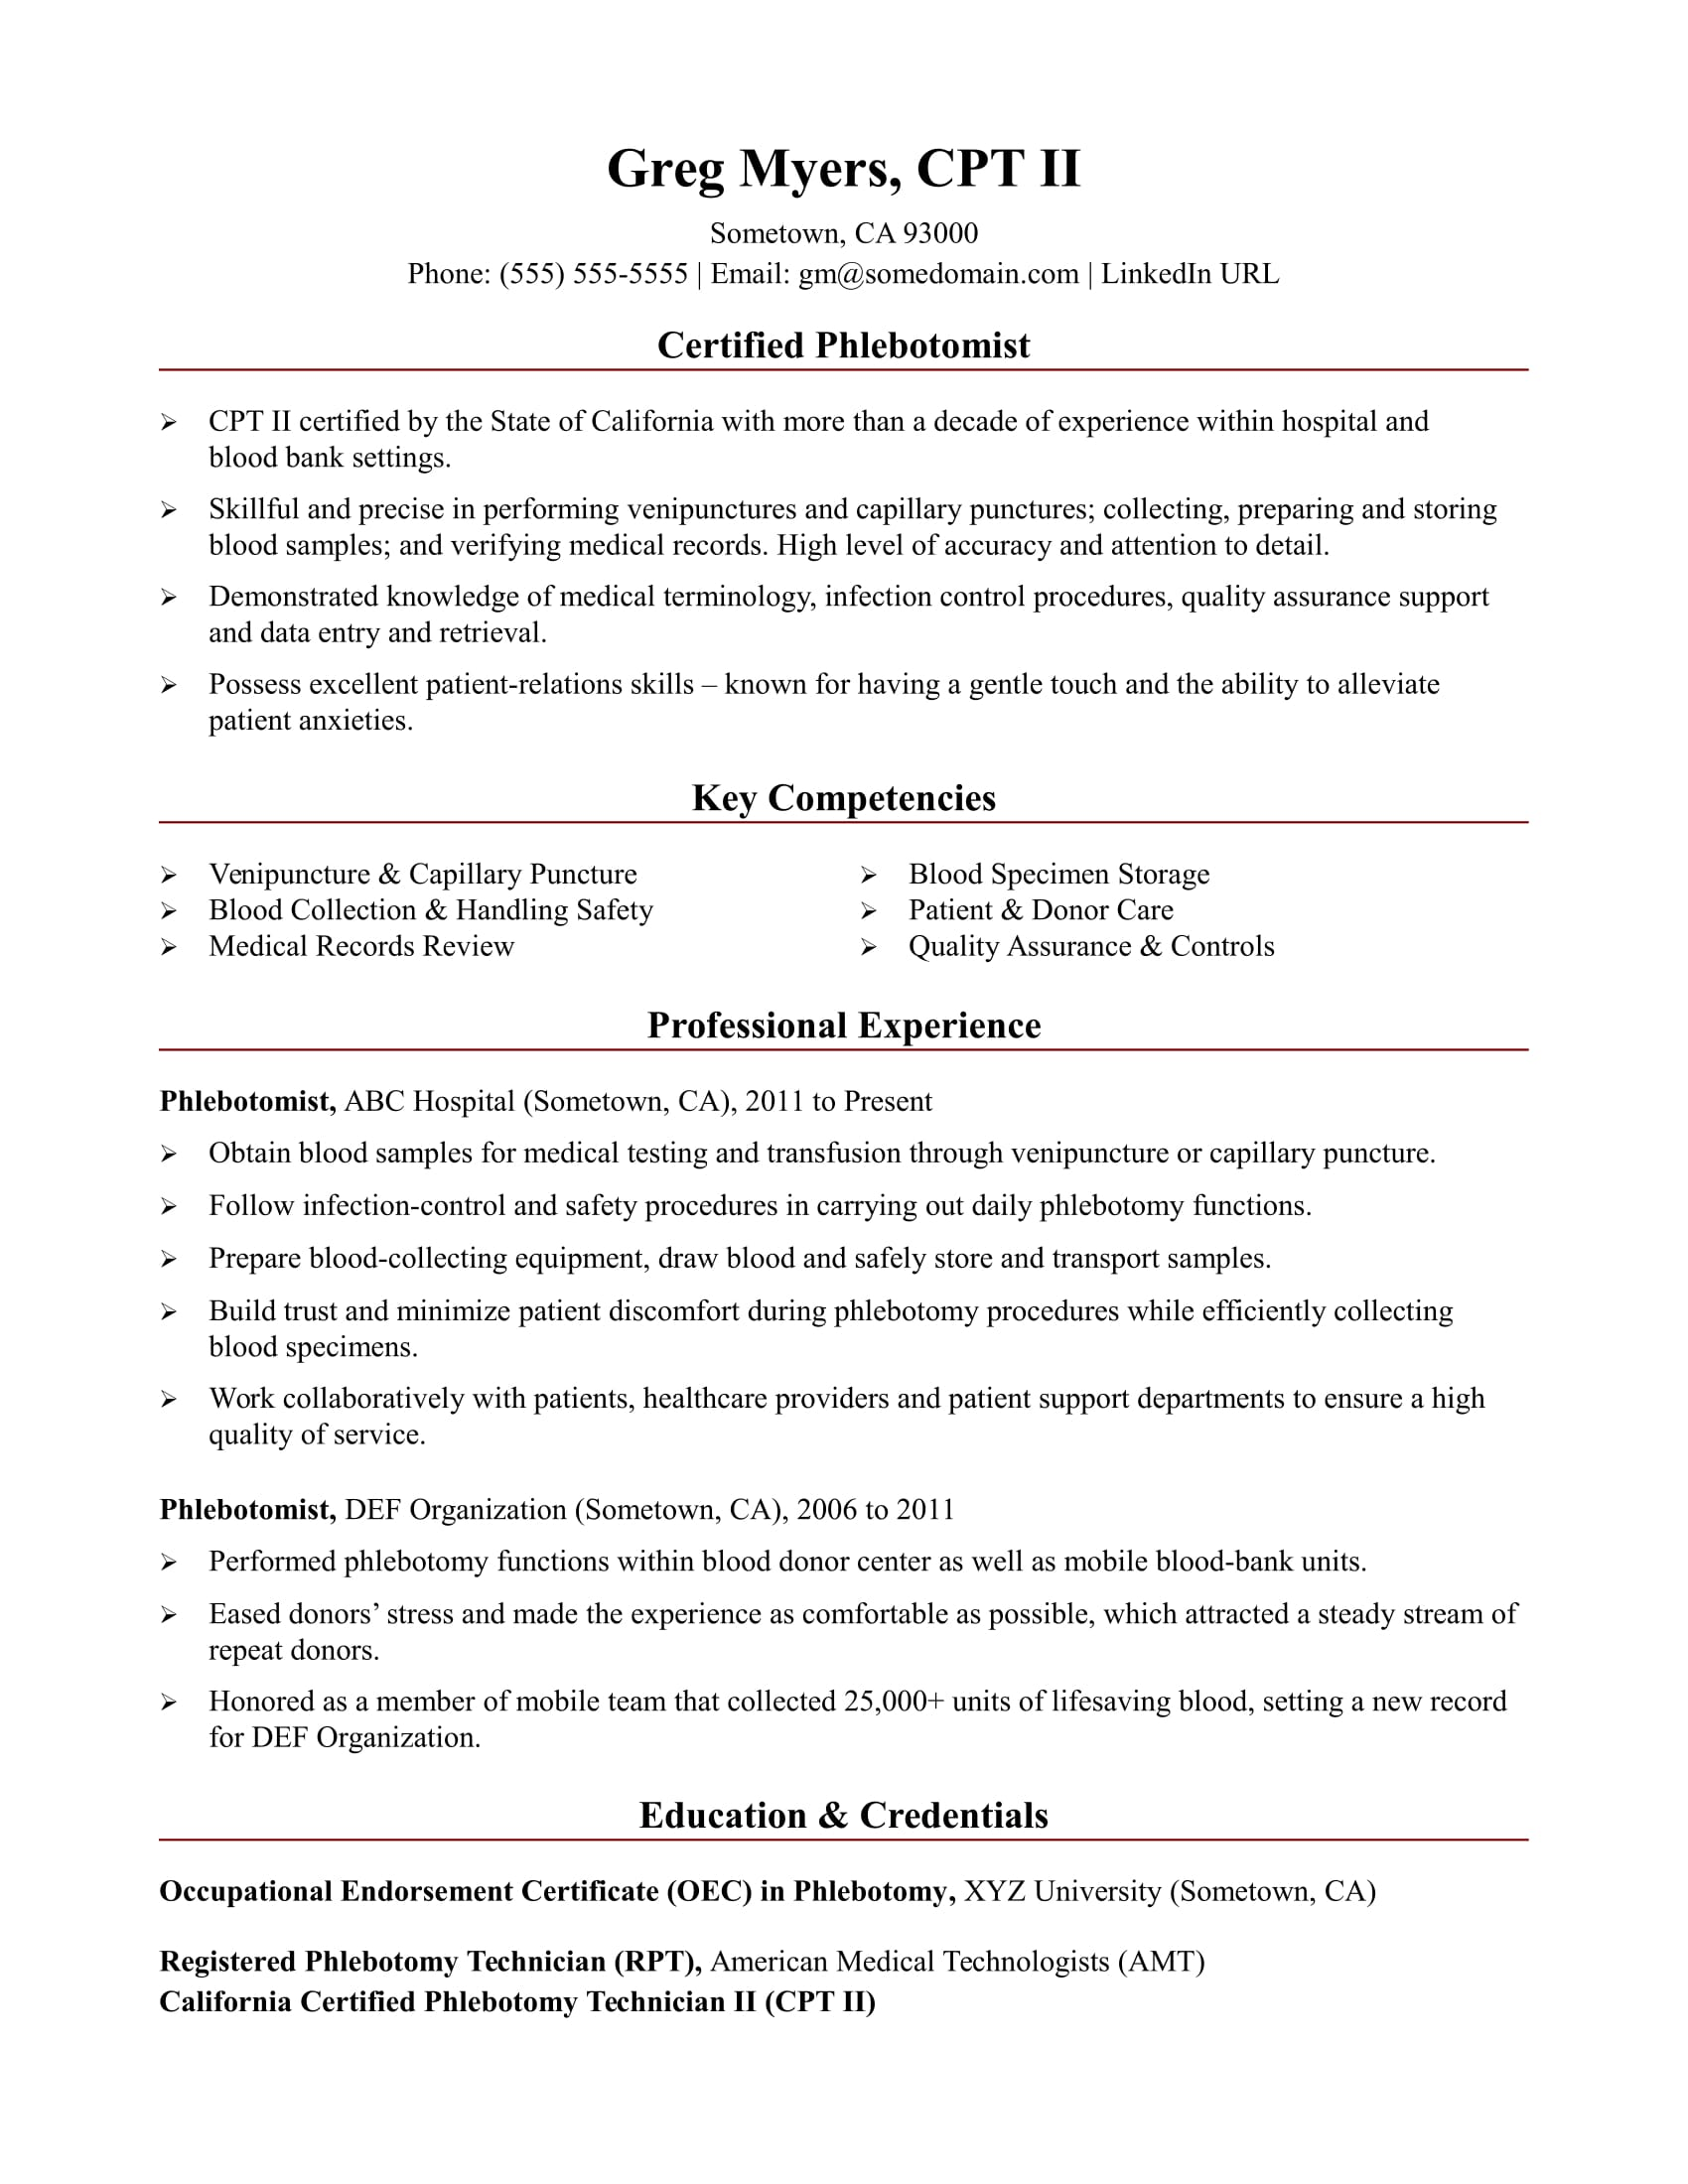 phlebotomist resume sample monster competency template foreign language teacher objective Resume Competency Resume Template